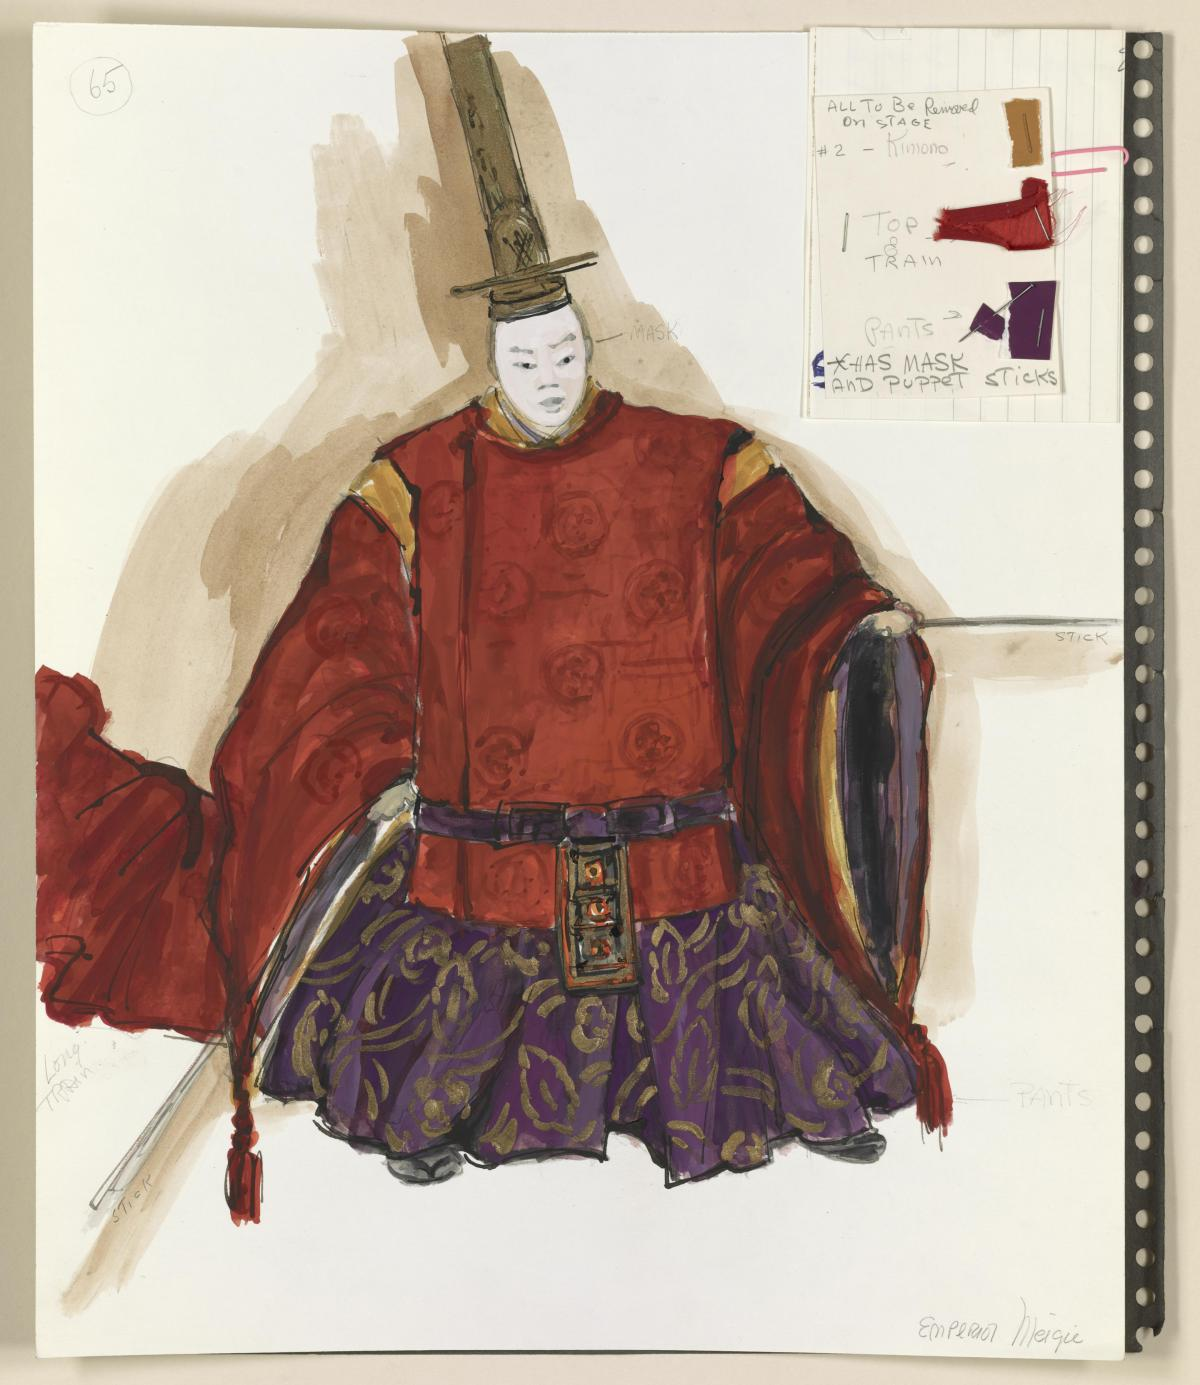 Florence Klotz's costume design for Pacific Overtures, which opened at the Winter Garden Theatre in June 1976.